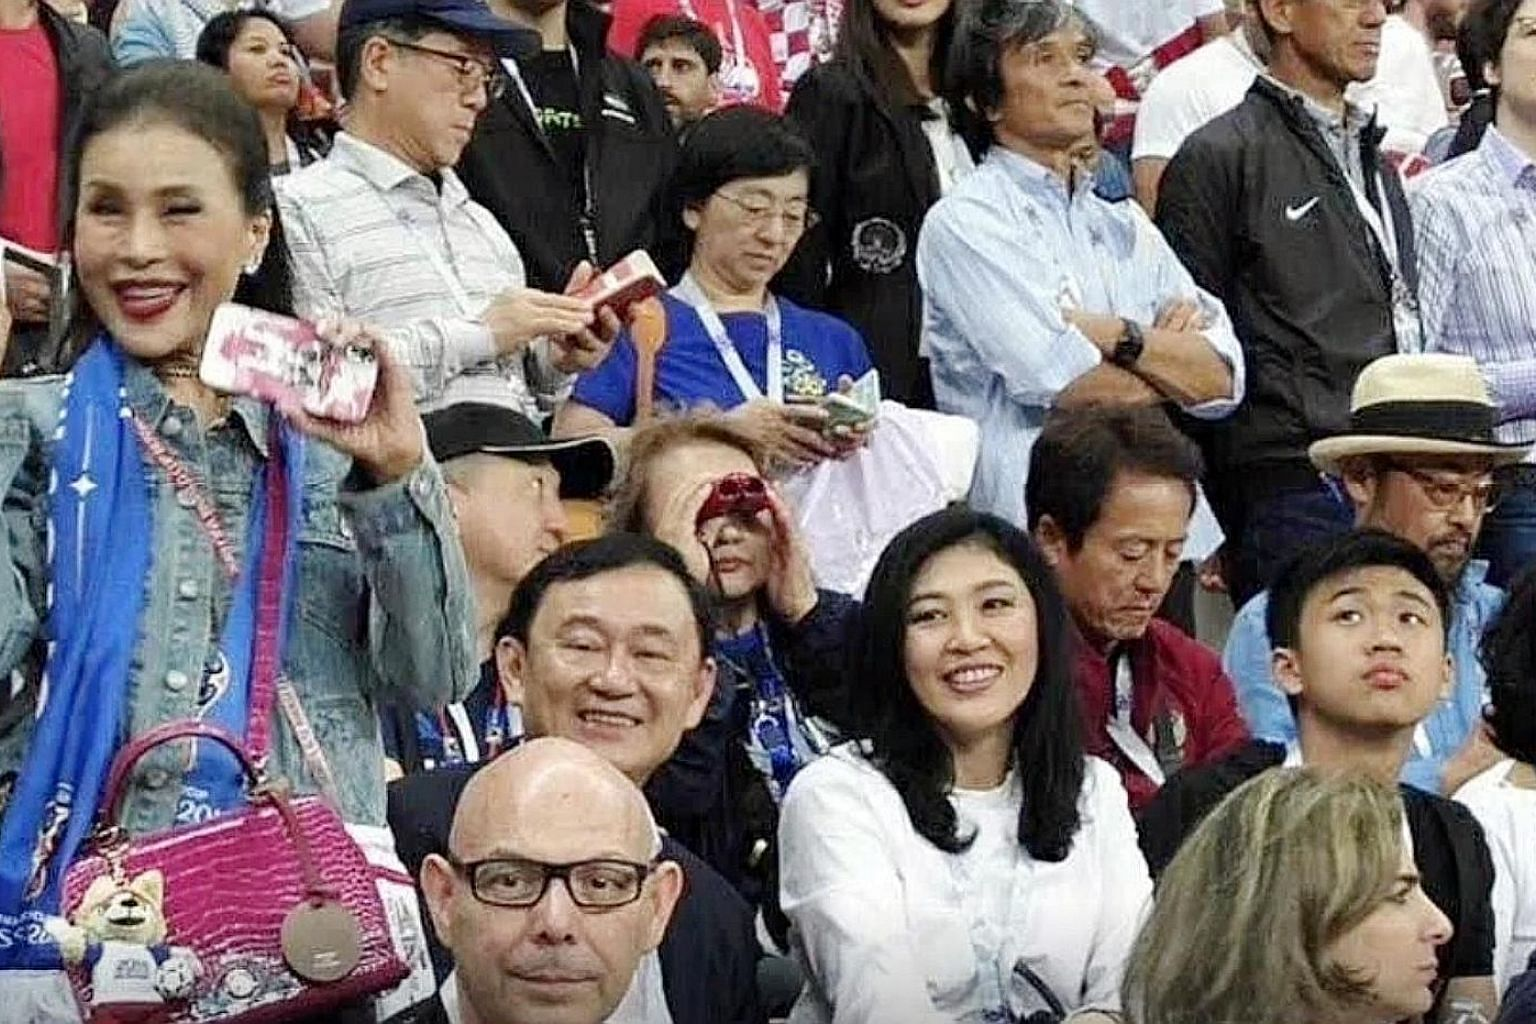 Former princess Ubolratana Rajakanya (left, standing) at a World Cup match in Russia last year with Thaksin Shinawatra and his sister Yingluck, both of whom are former prime ministers of Thailand who fled the country to avoid jail terms. Ms Ubolratan